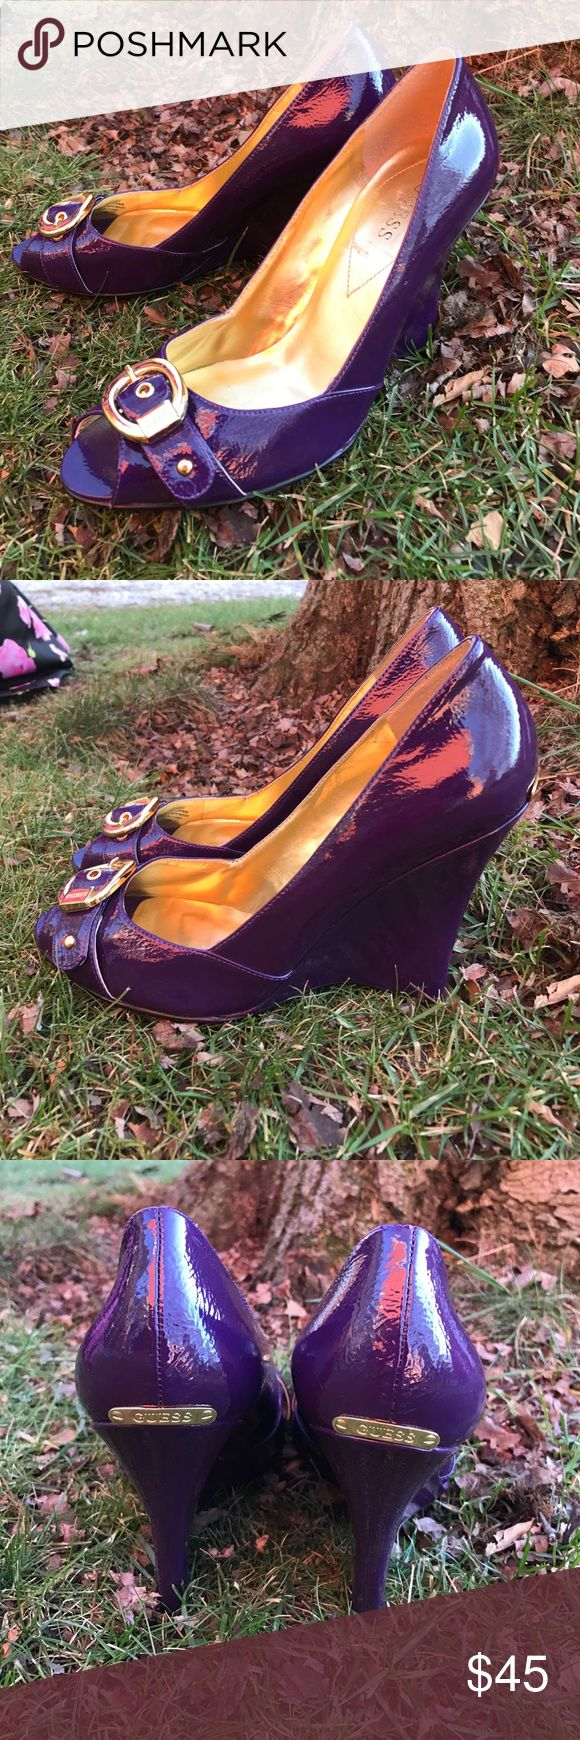 Like new Guess wedge heels! These fabulous shoes are classy and unique! They are a deep purple patent leather with a 4 inch wedge heel! Guess Shoes